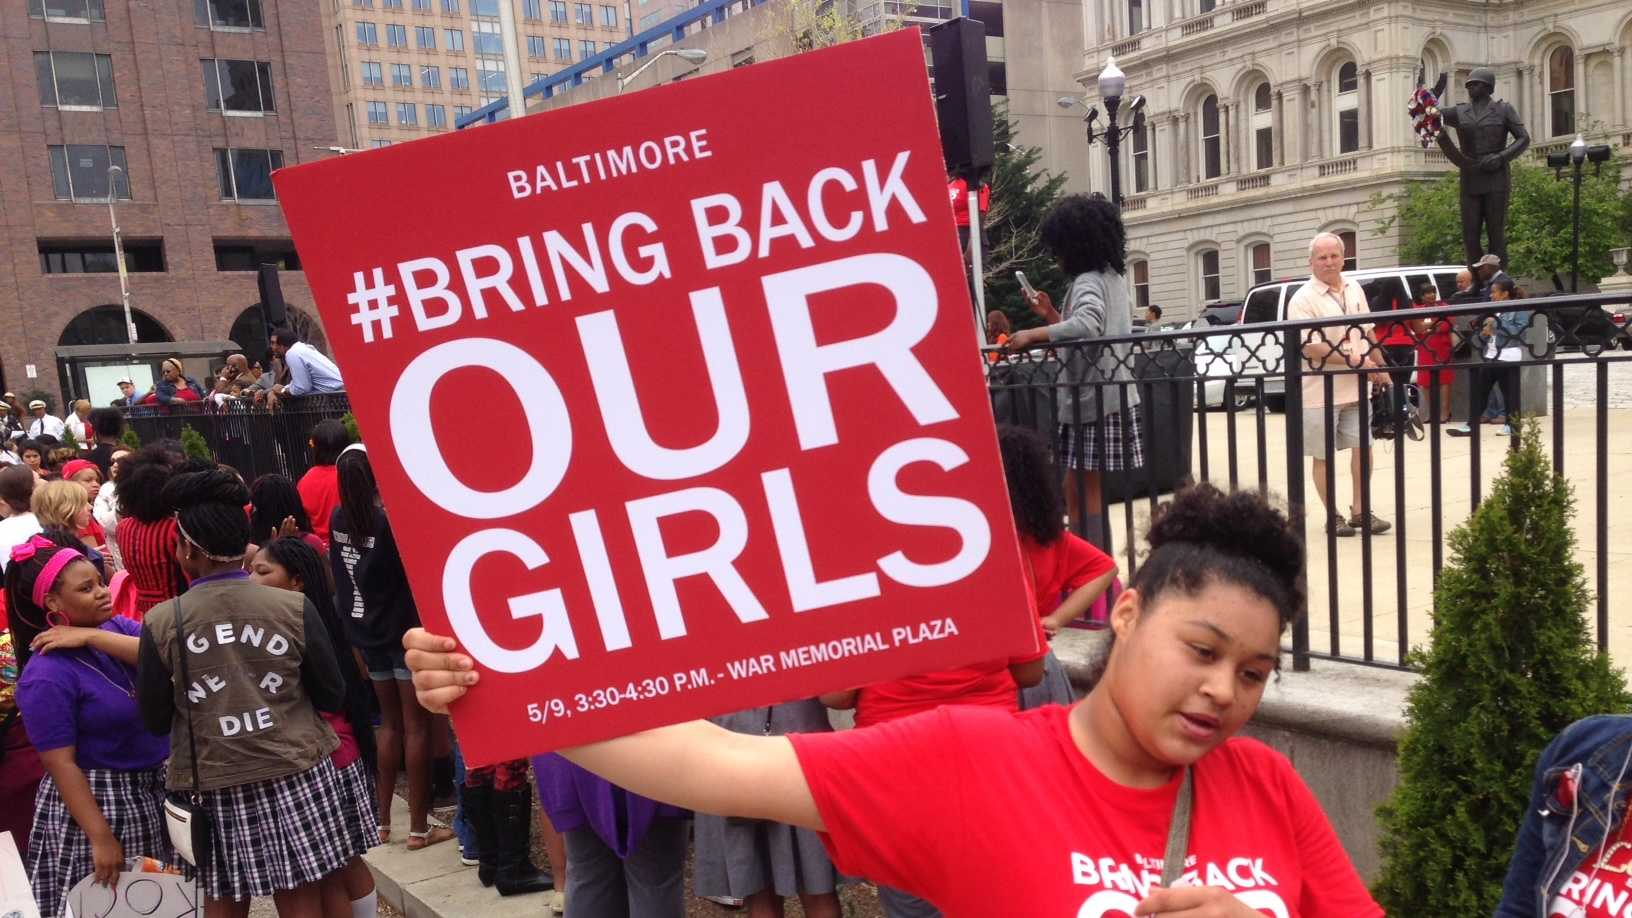 Bring Back Our Girls rally in Baltimore